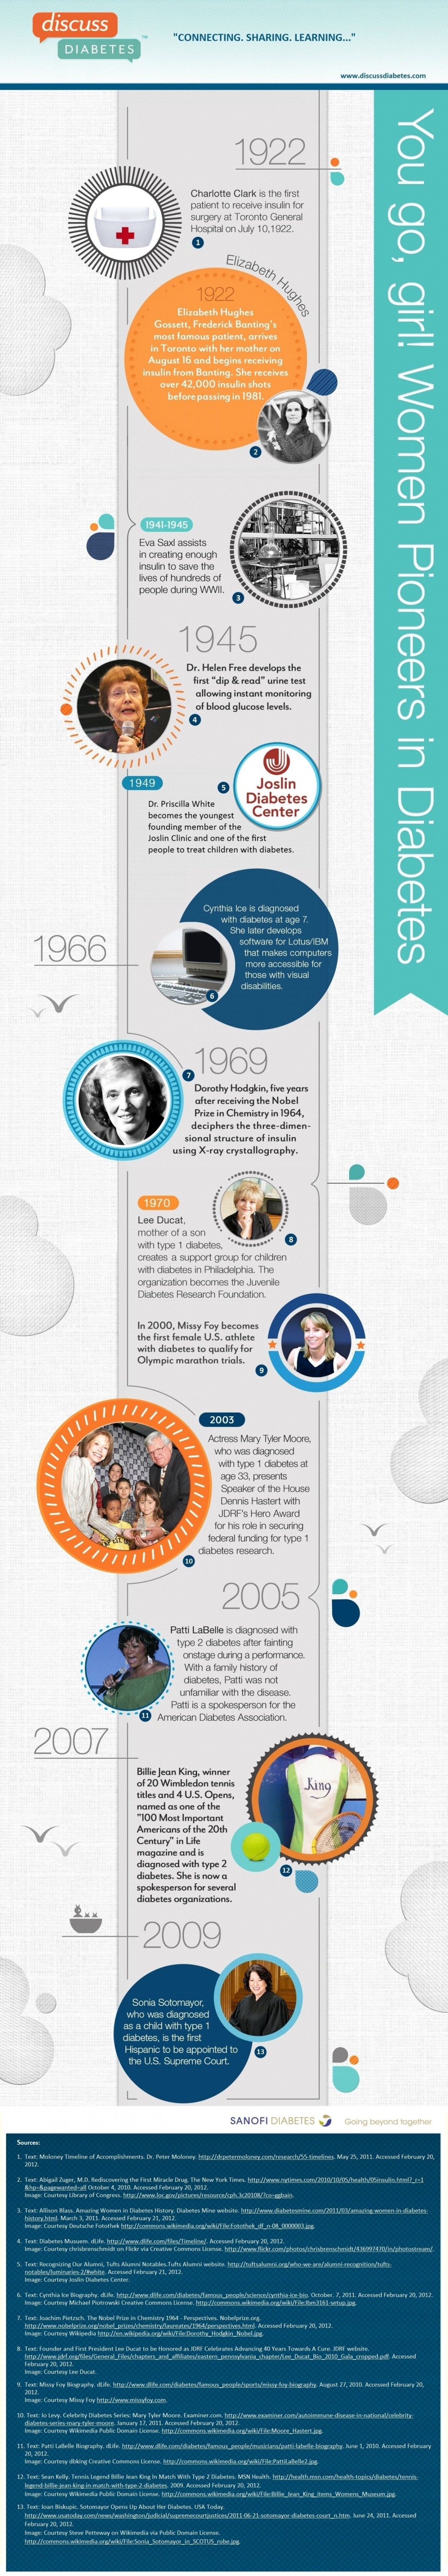 Women pioneers in diabetes timeline